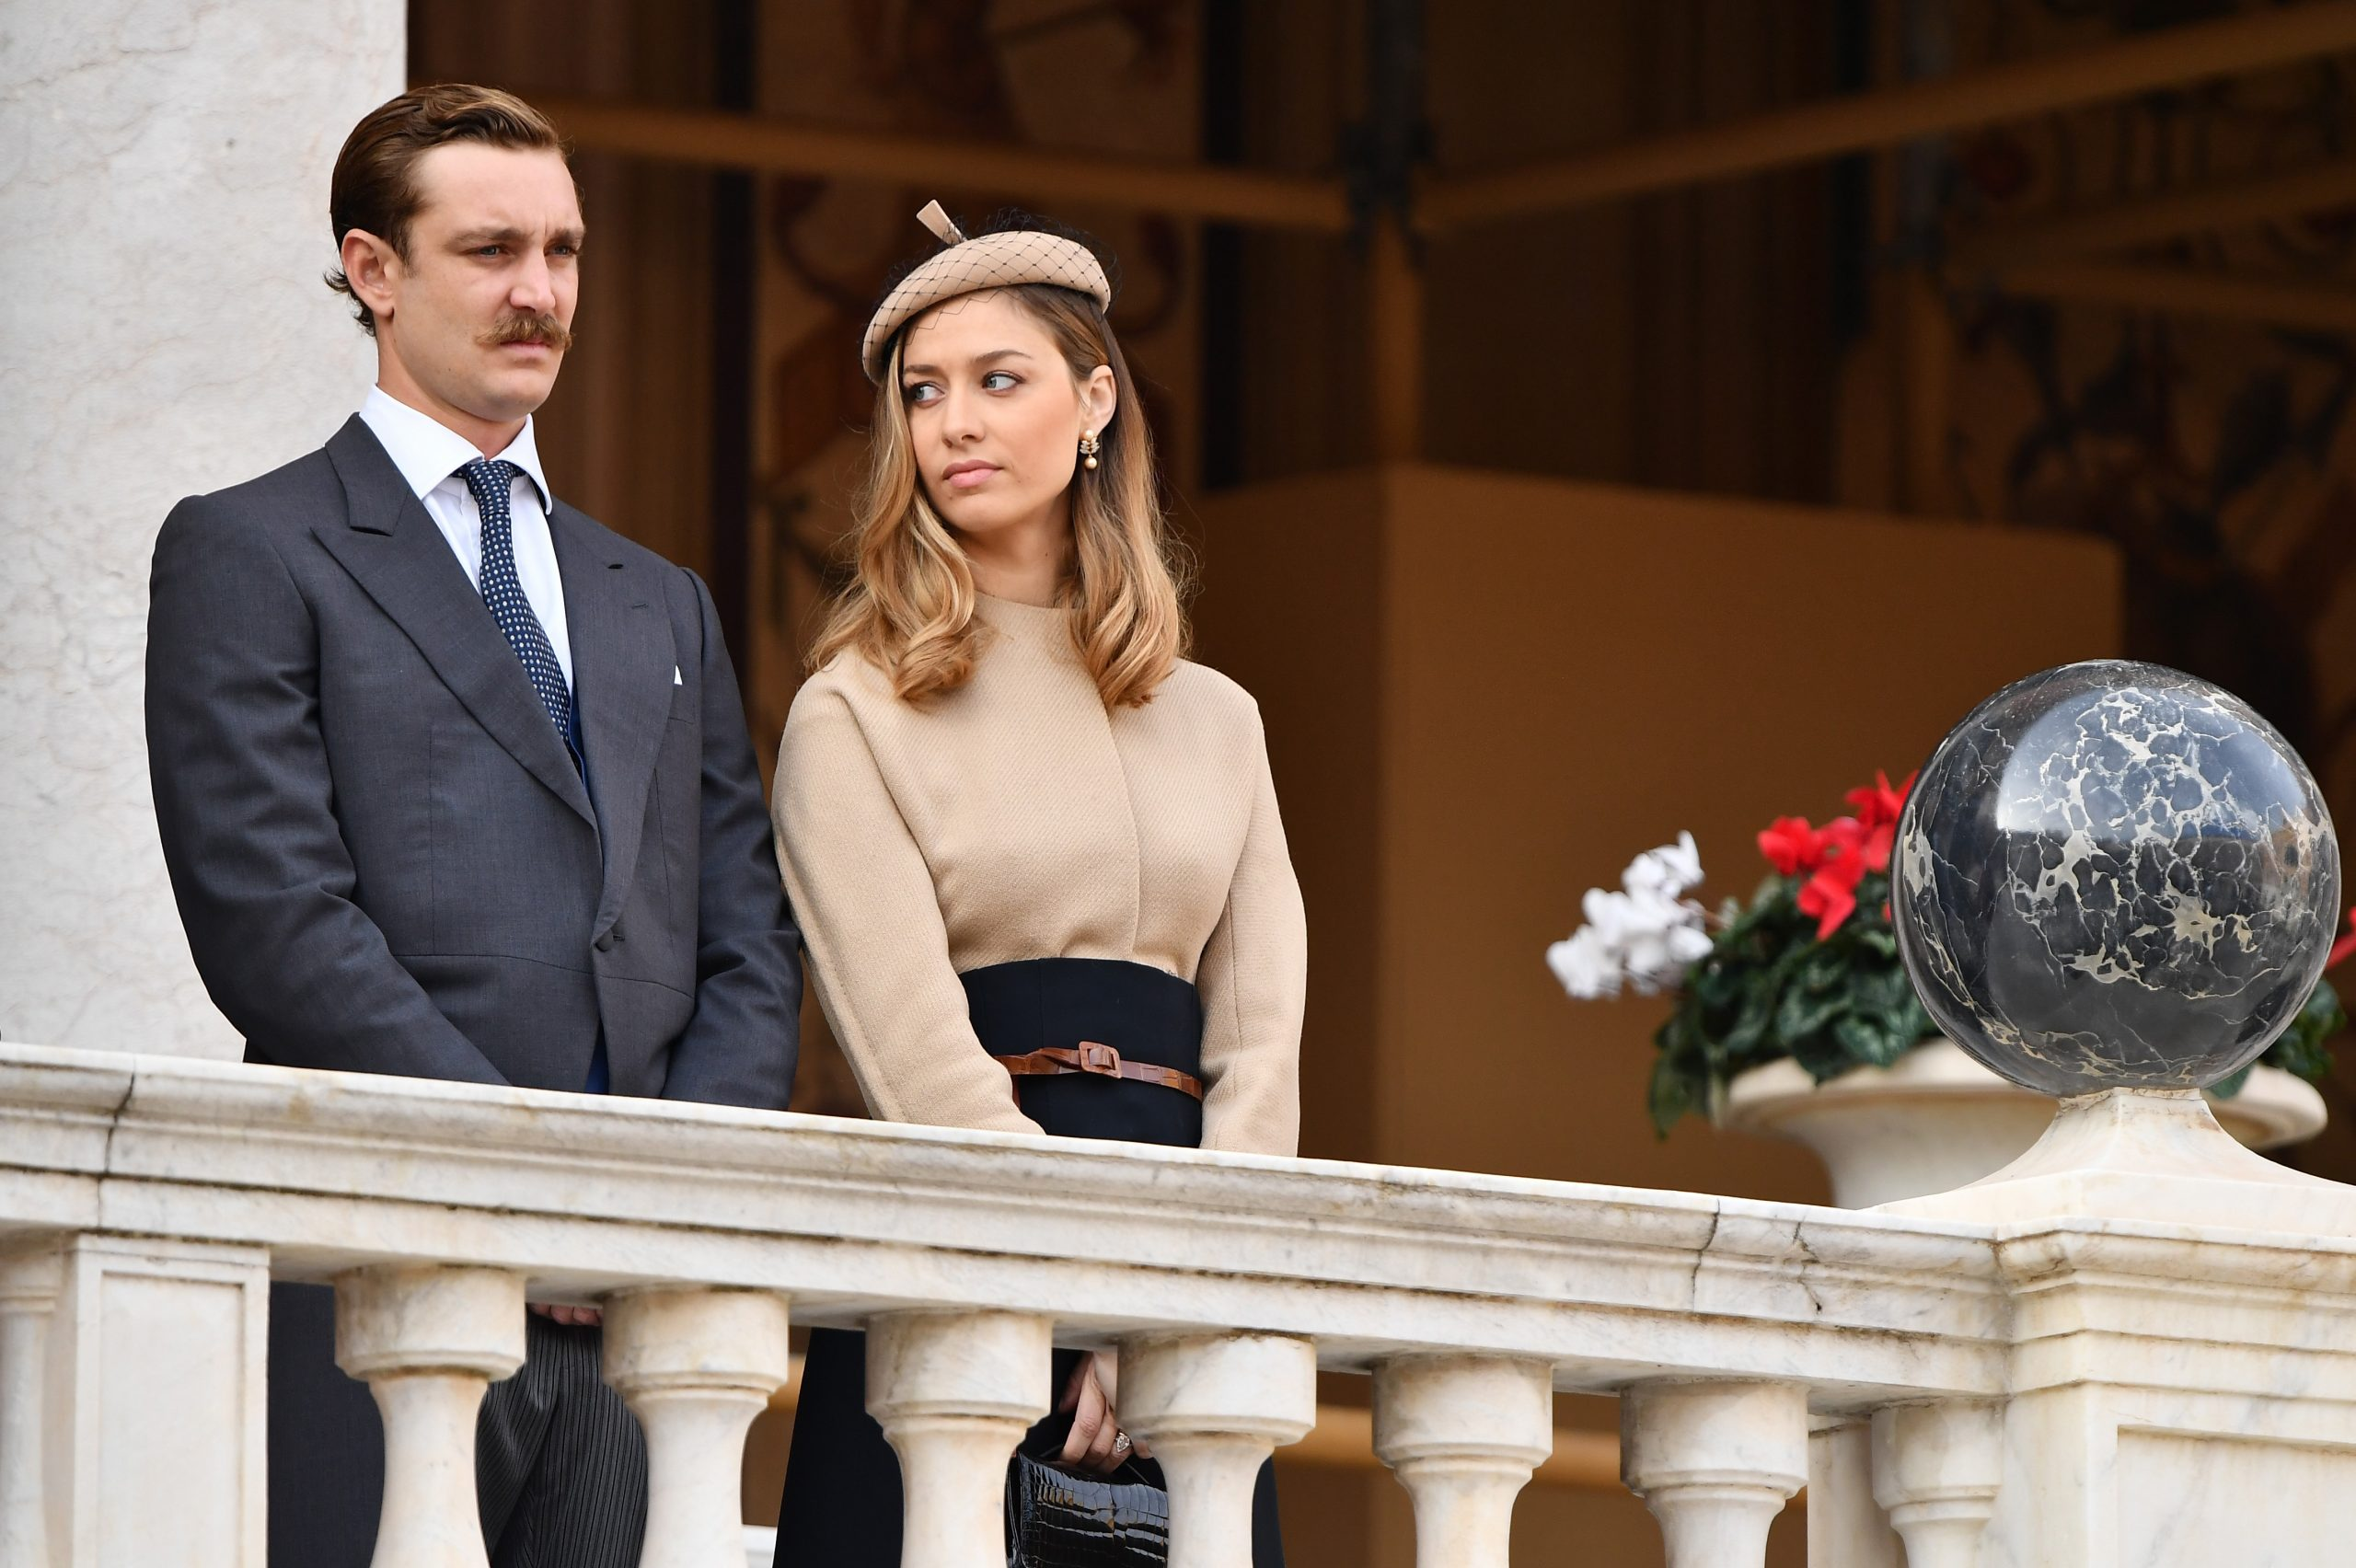 Pierre Casiraghi y Beatrice Casiraghi/Foto: Getty